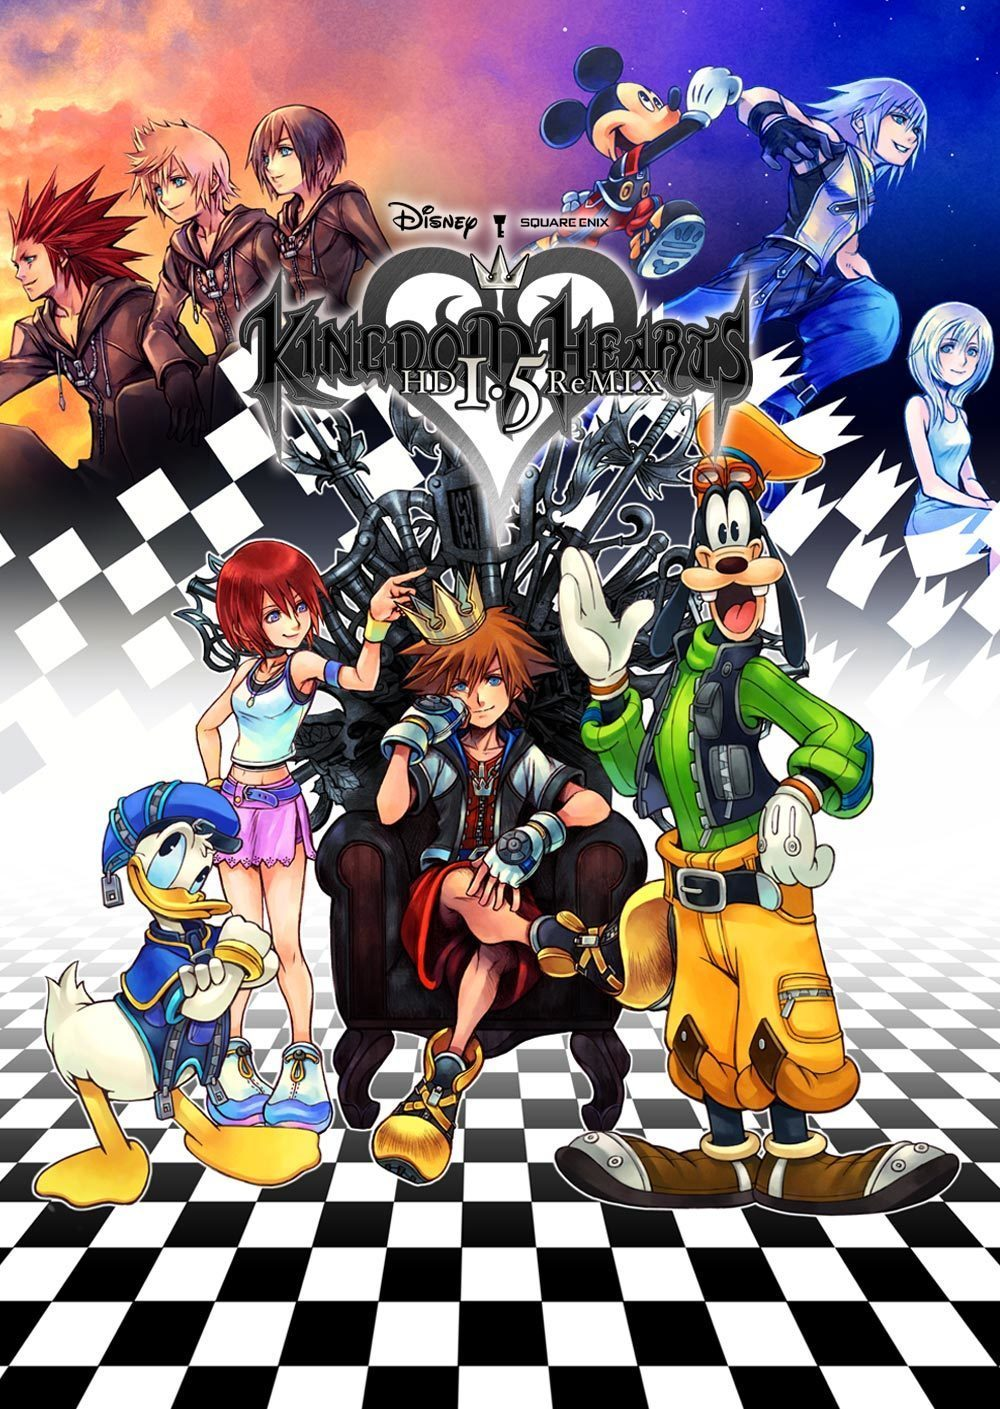 KINGDOM HEARTS - HD 1.5 ReMIX